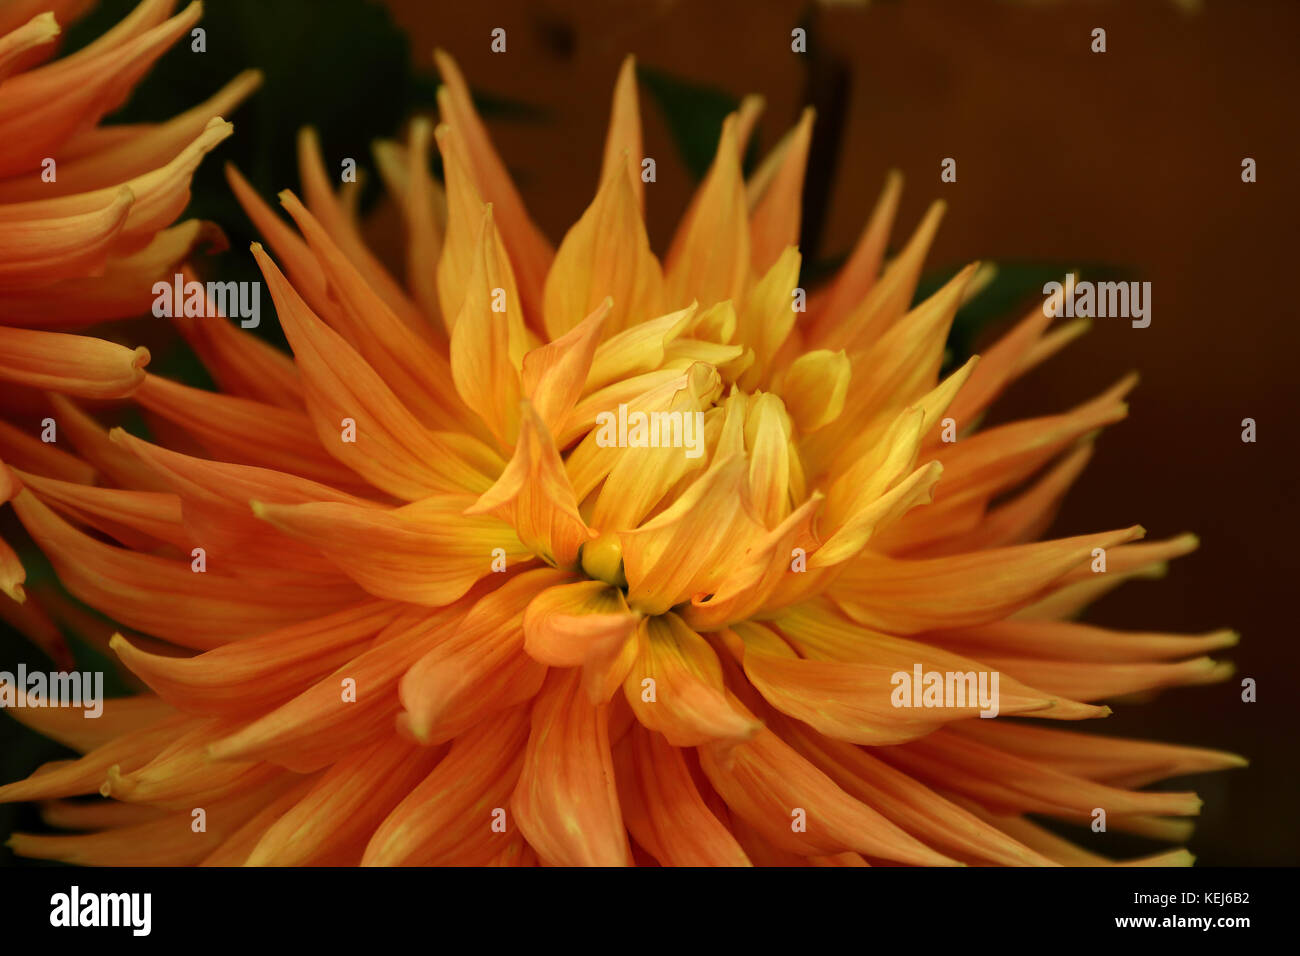 Dahlias come in a wide variety of colors, shapes and sizes, but they are always spectacular - Stock Image